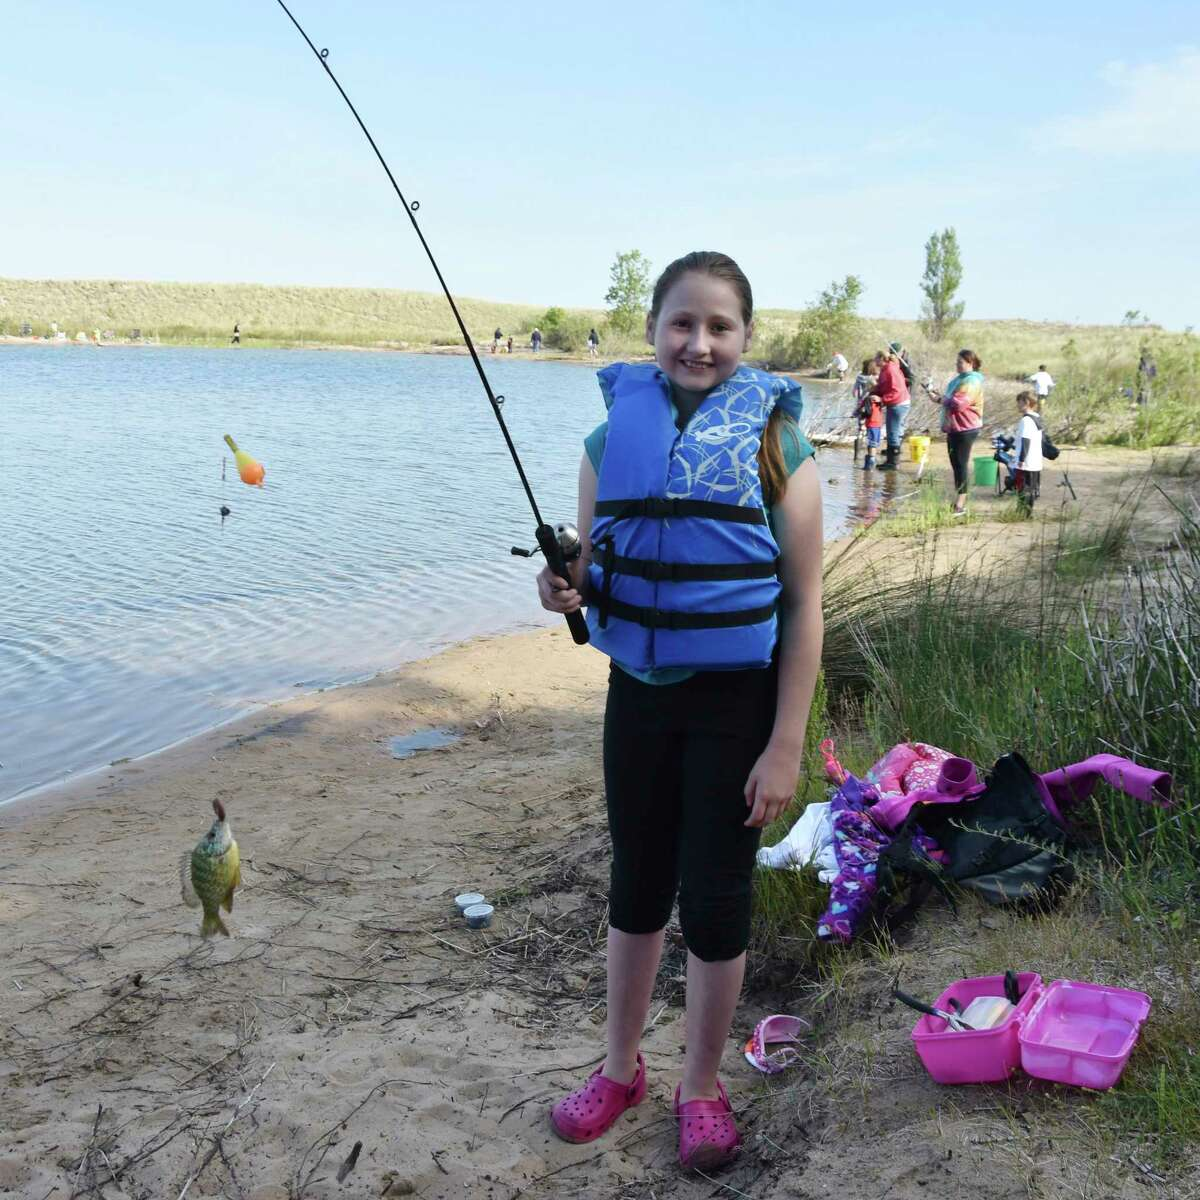 Emma Campbell, 10, caught a bluegill on her first cast at the Kids Fish Day event at Man Made Lake on Wednesday morning. (Arielle Bren/News Advocate)